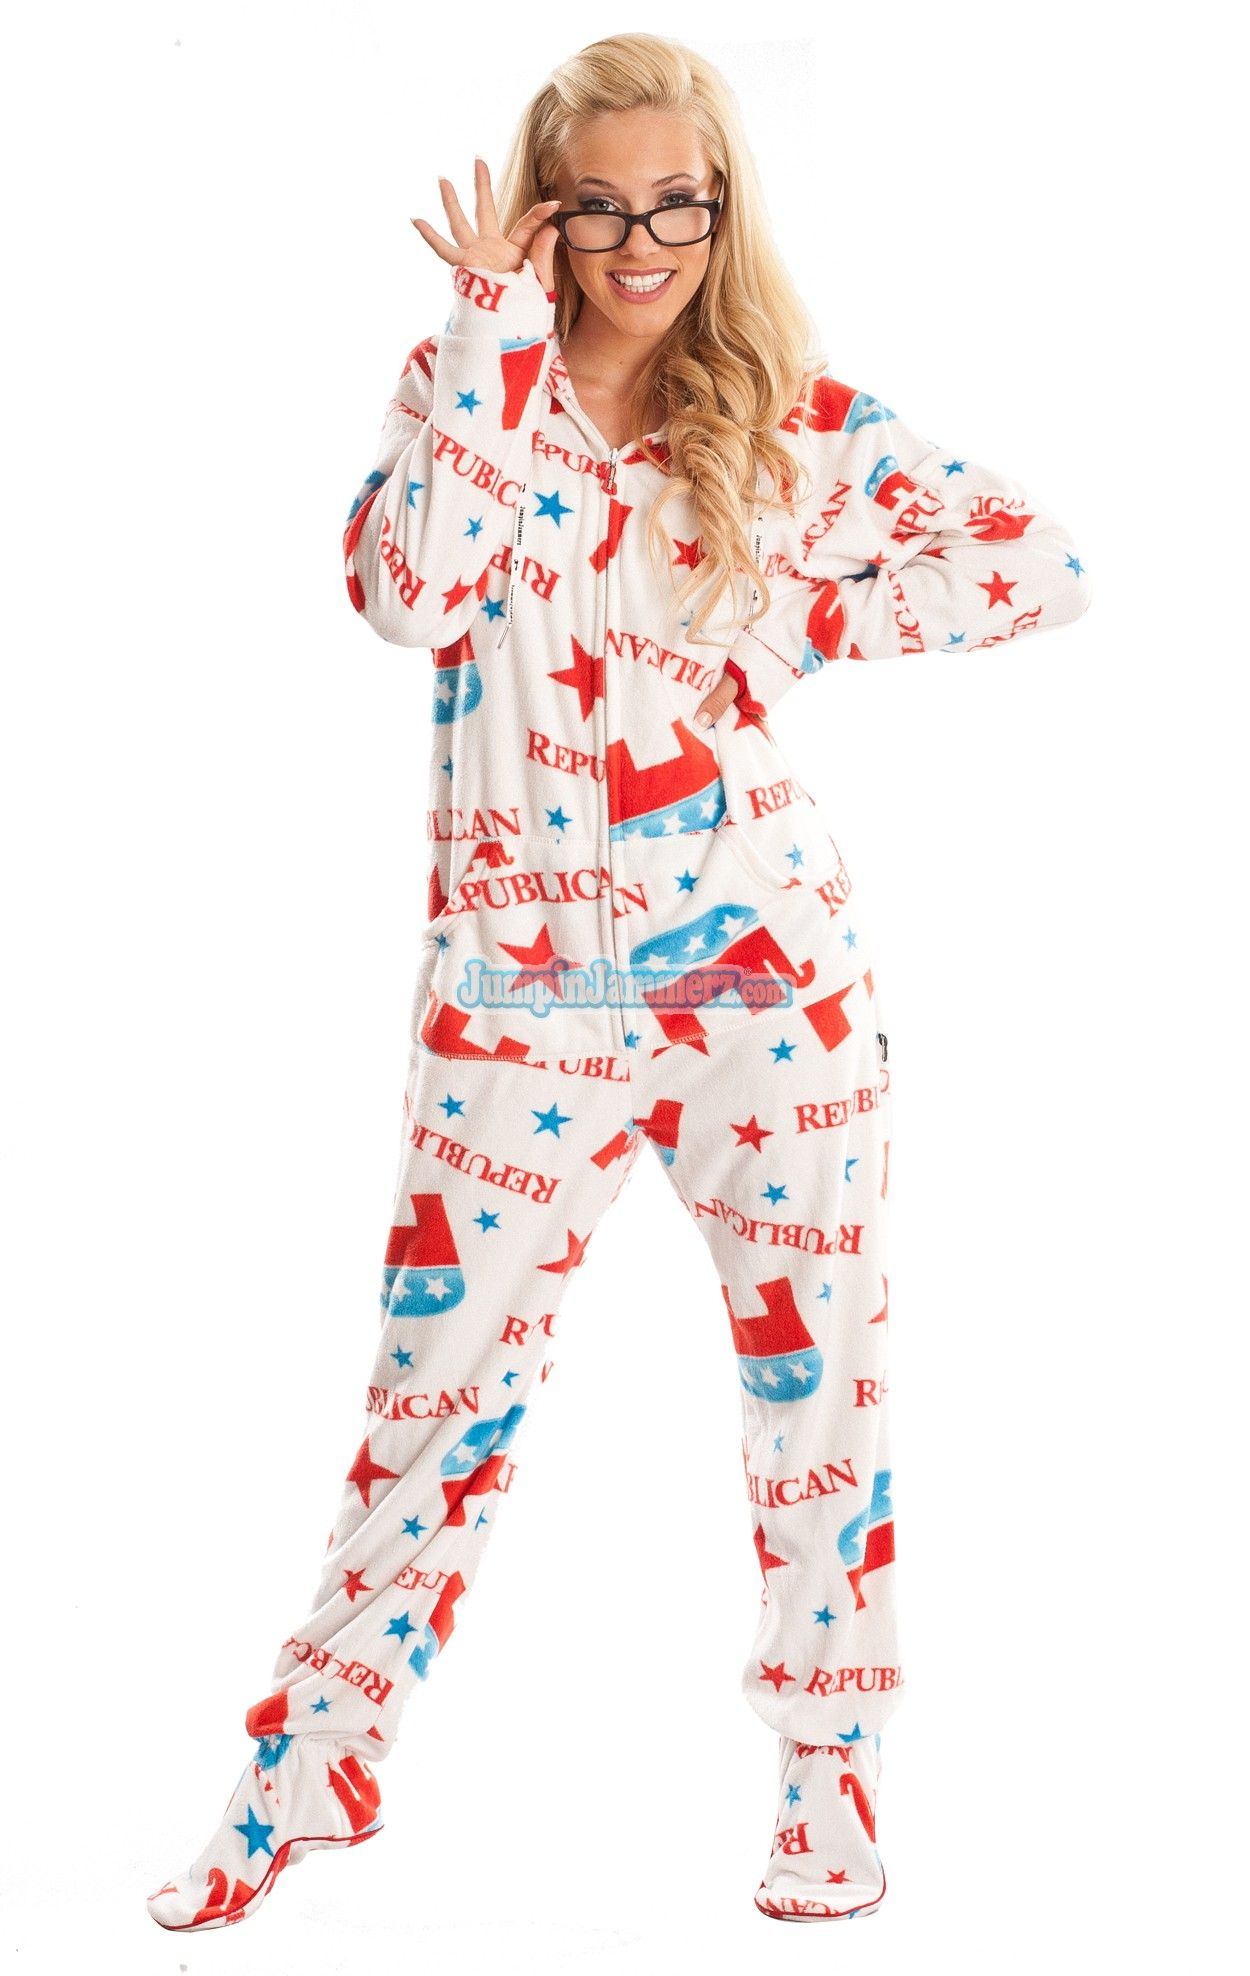 Republican Pajamas HD - Hooded Footed Pajamas - Pajamas Footie PJs Onesies  One Piece Adult Pajamas - JumpinJammerz.com bb891f1a3